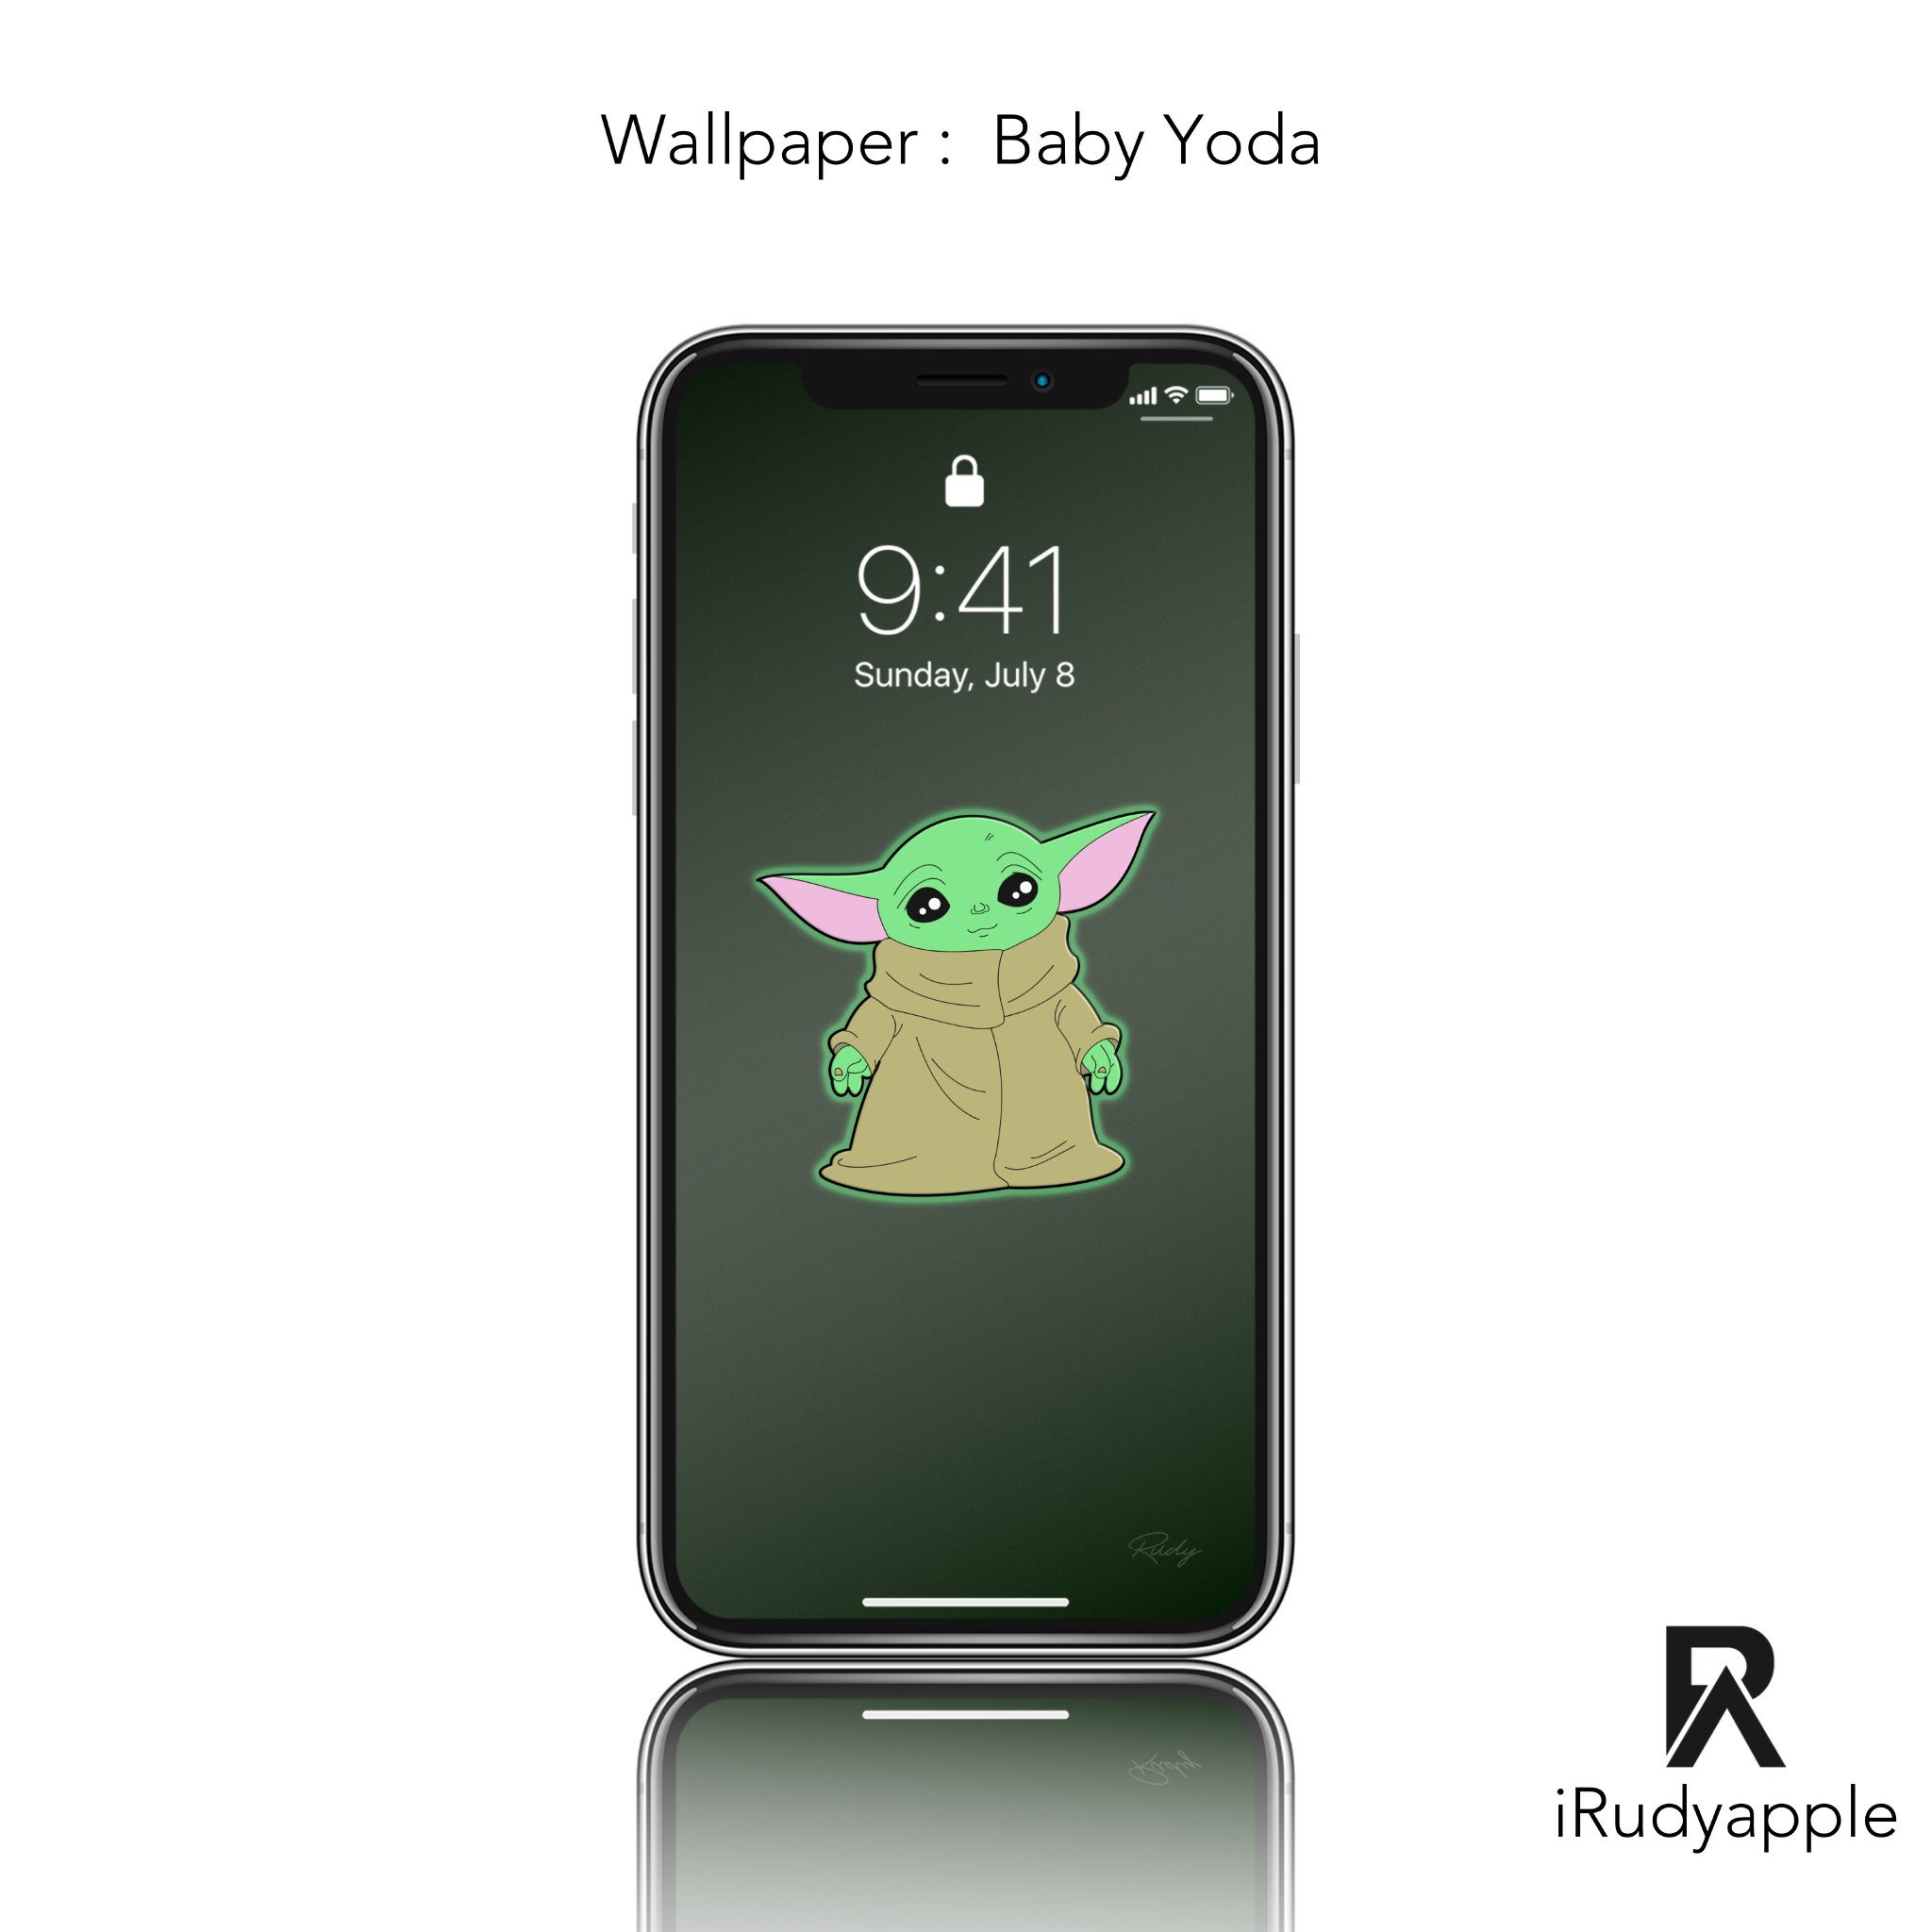 Rudy On Twitter New Wallpaper Baby Yoda Only For Sale Wallpapers Wallphone Artwork Art Abstract Abstractart Abstractpainting Digitalart Digitalpainting Digitalartwork Luxury Iphone Iloveapple Iphone11promax Iphone11 Iphone11pro